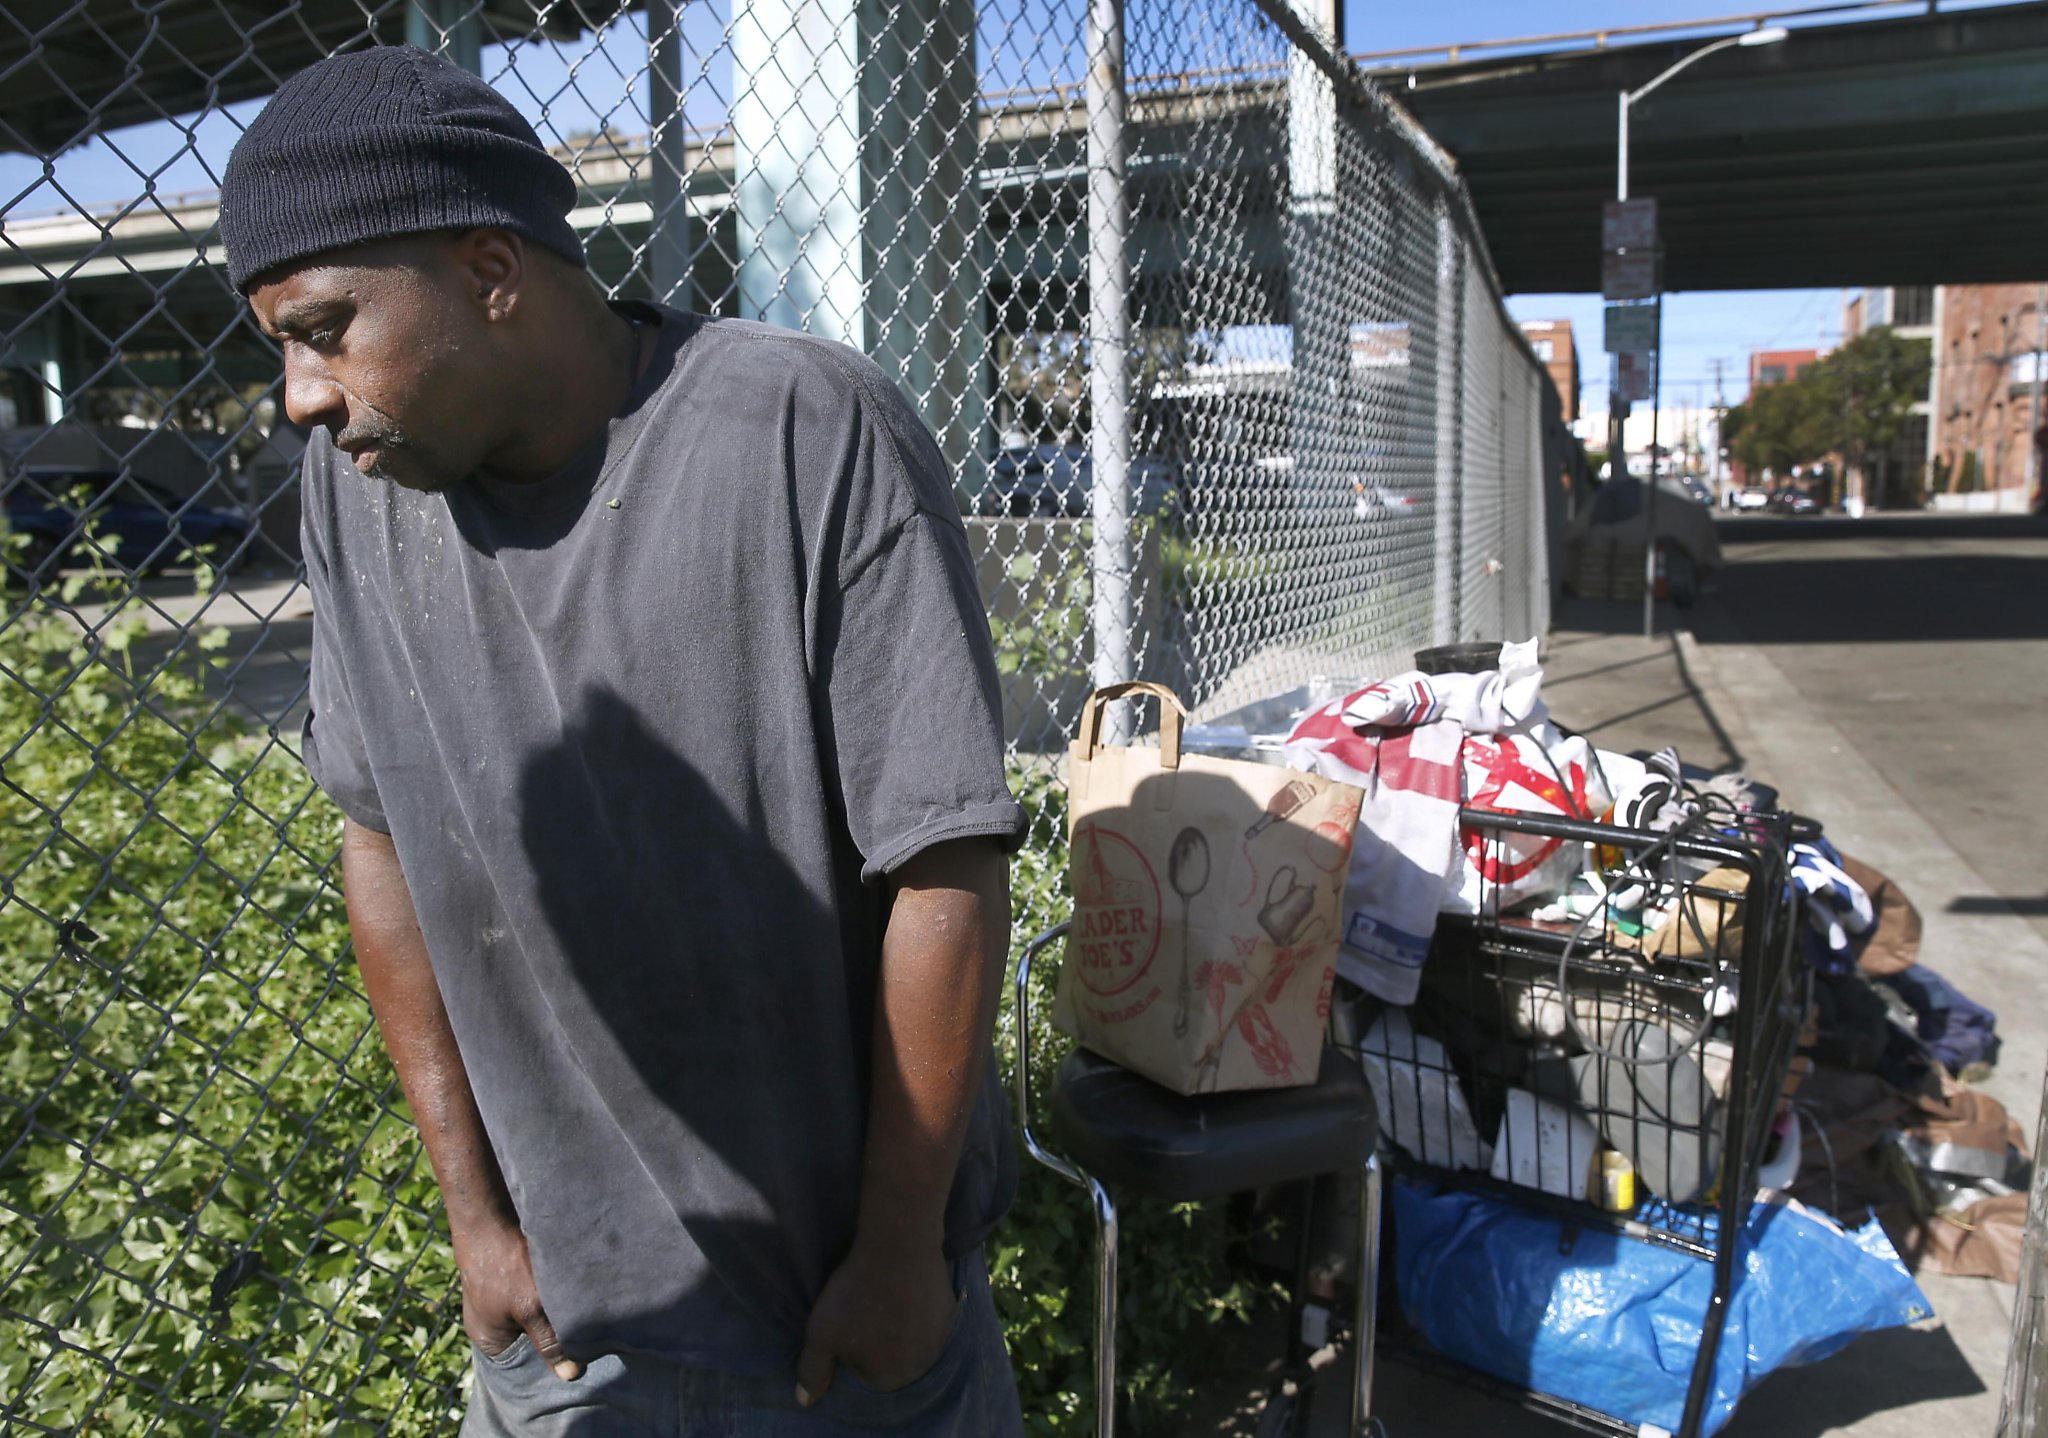 SF clears street camp, angering city's homeless-aid officials